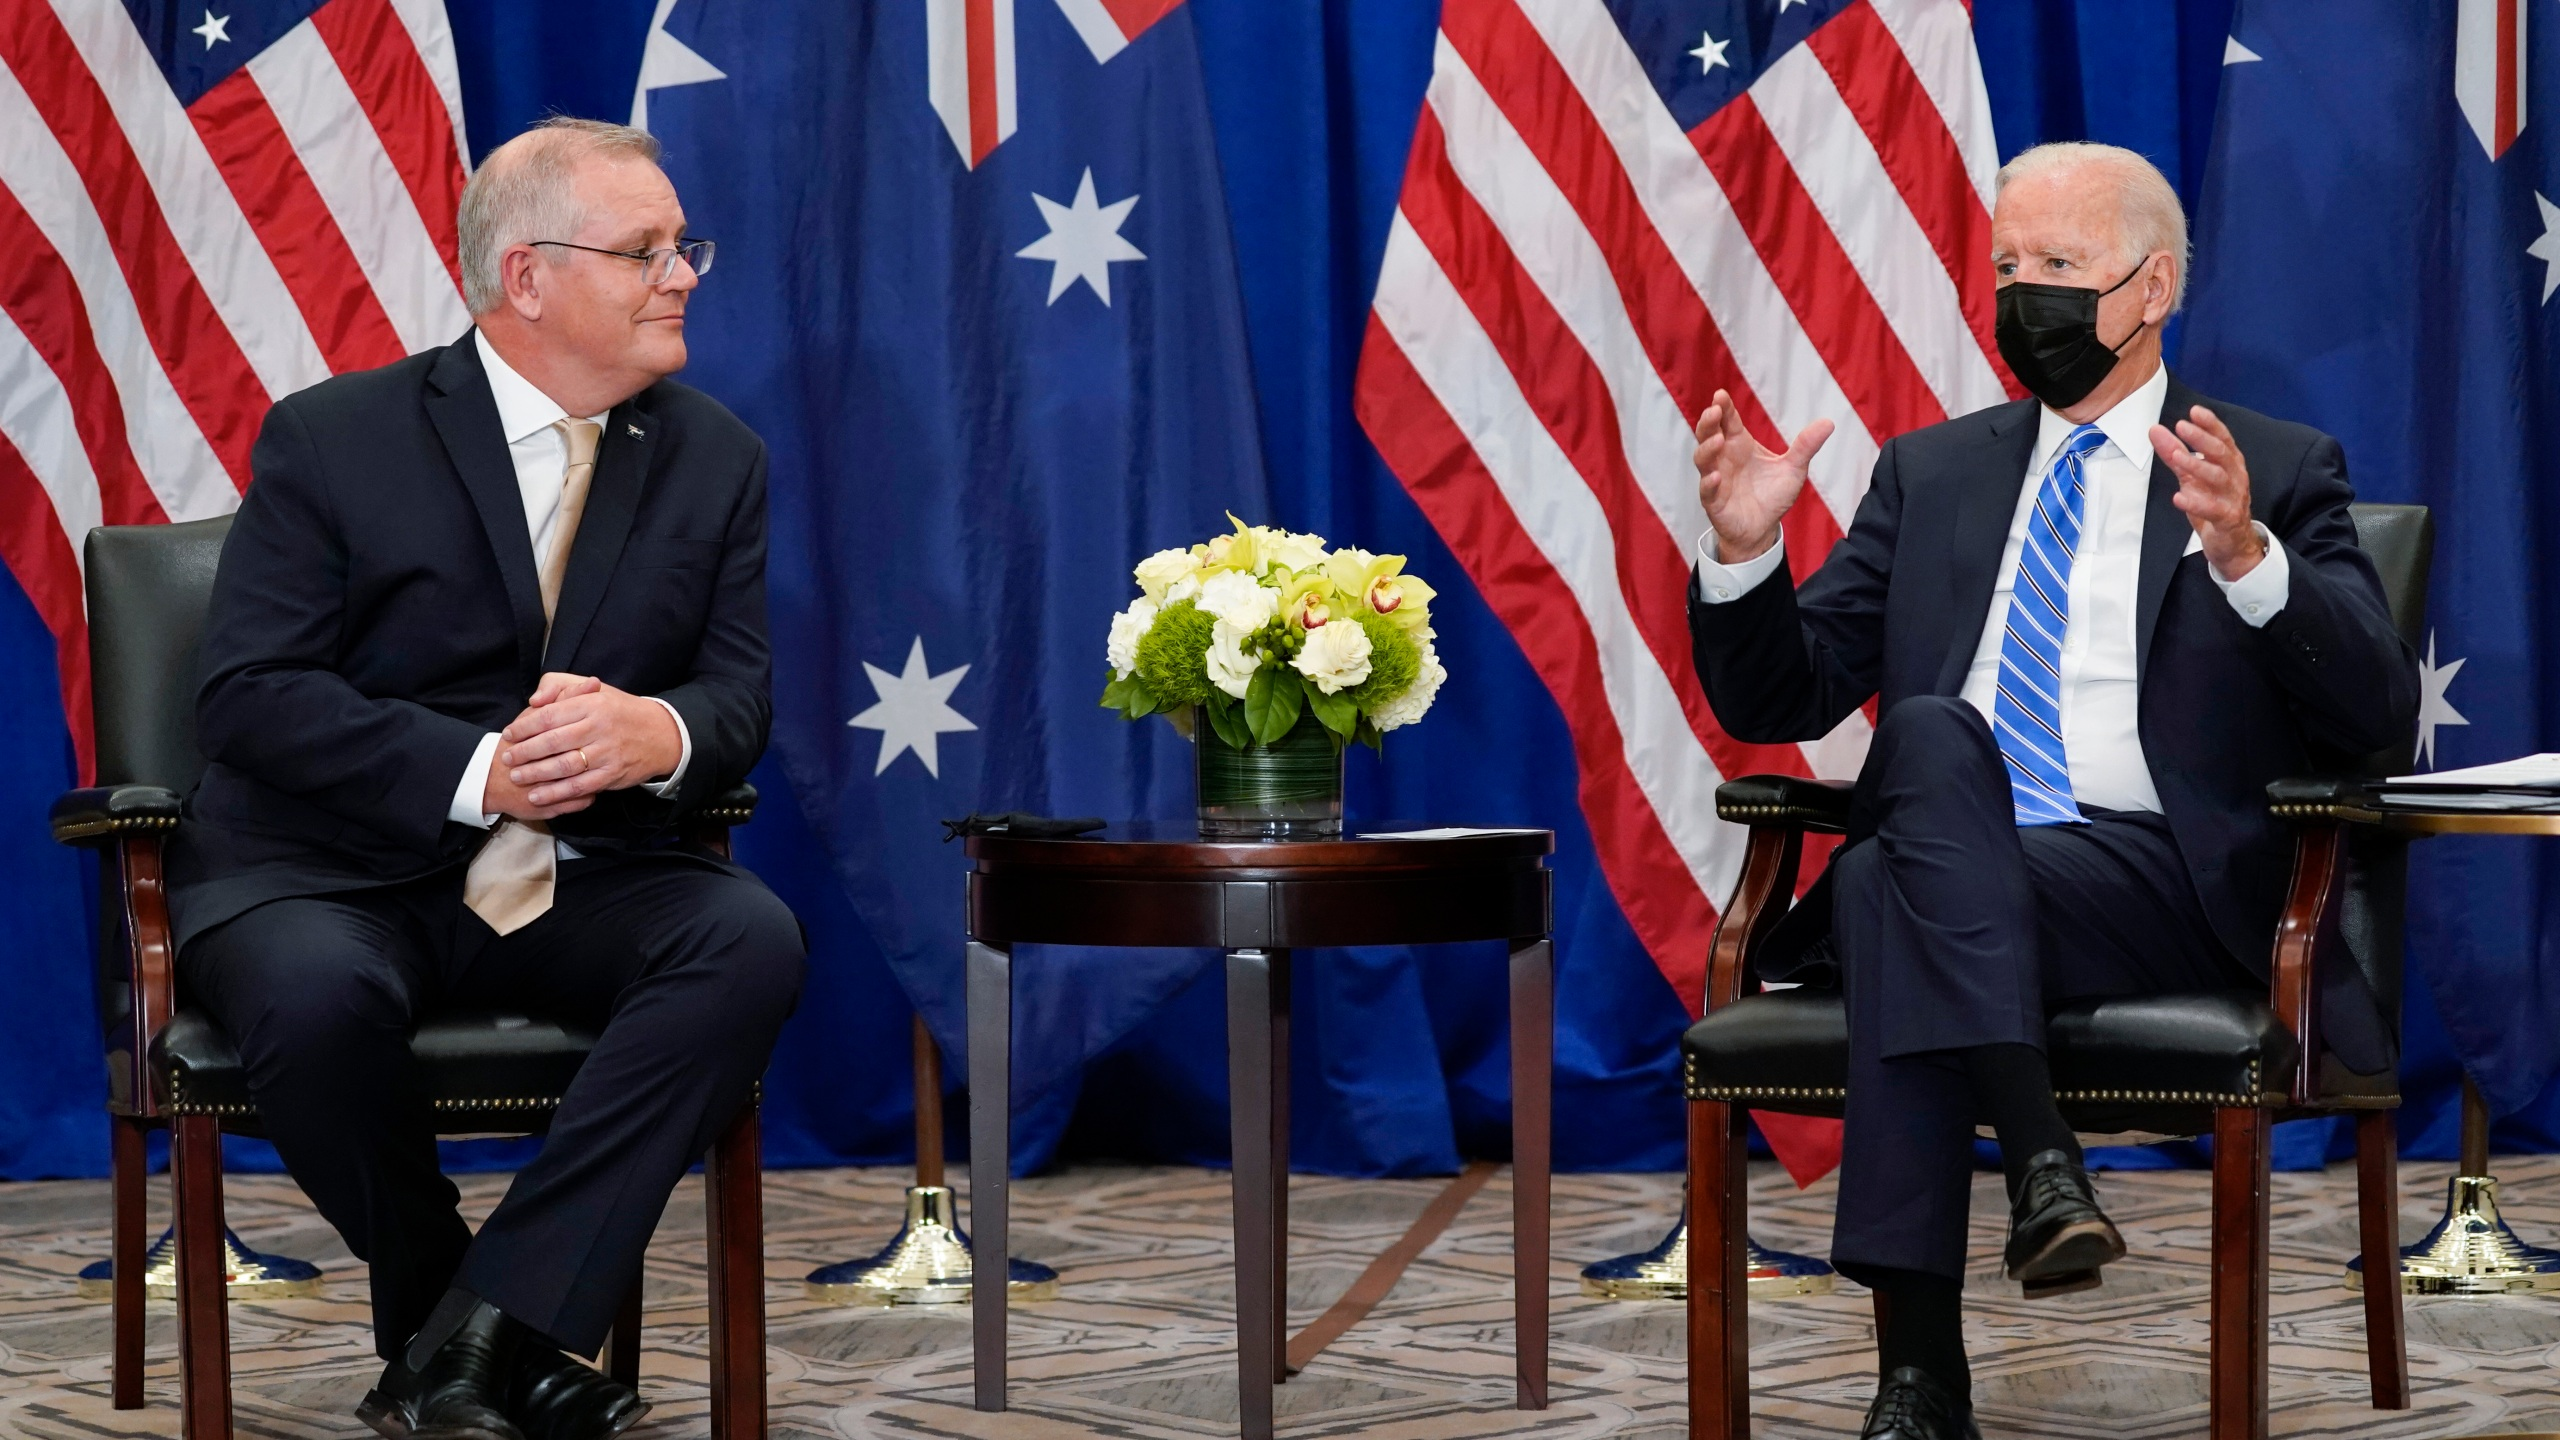 """In this Sept. 21, 2021, file photo President Joe Biden meets with Australian Prime Minister Scott Morrison at the Intercontinental Barclay Hotel during the United Nations General Assembly in New York. Biden is set to host the first ever in-person gathering of leaders of the Indo-Pacific alliance known as """"the Quad"""" on Friday, wrapping up a tough week of diplomacy in which he faced no shortage of criticism from both allies and adversaries. (AP Photo/Evan Vucci)"""